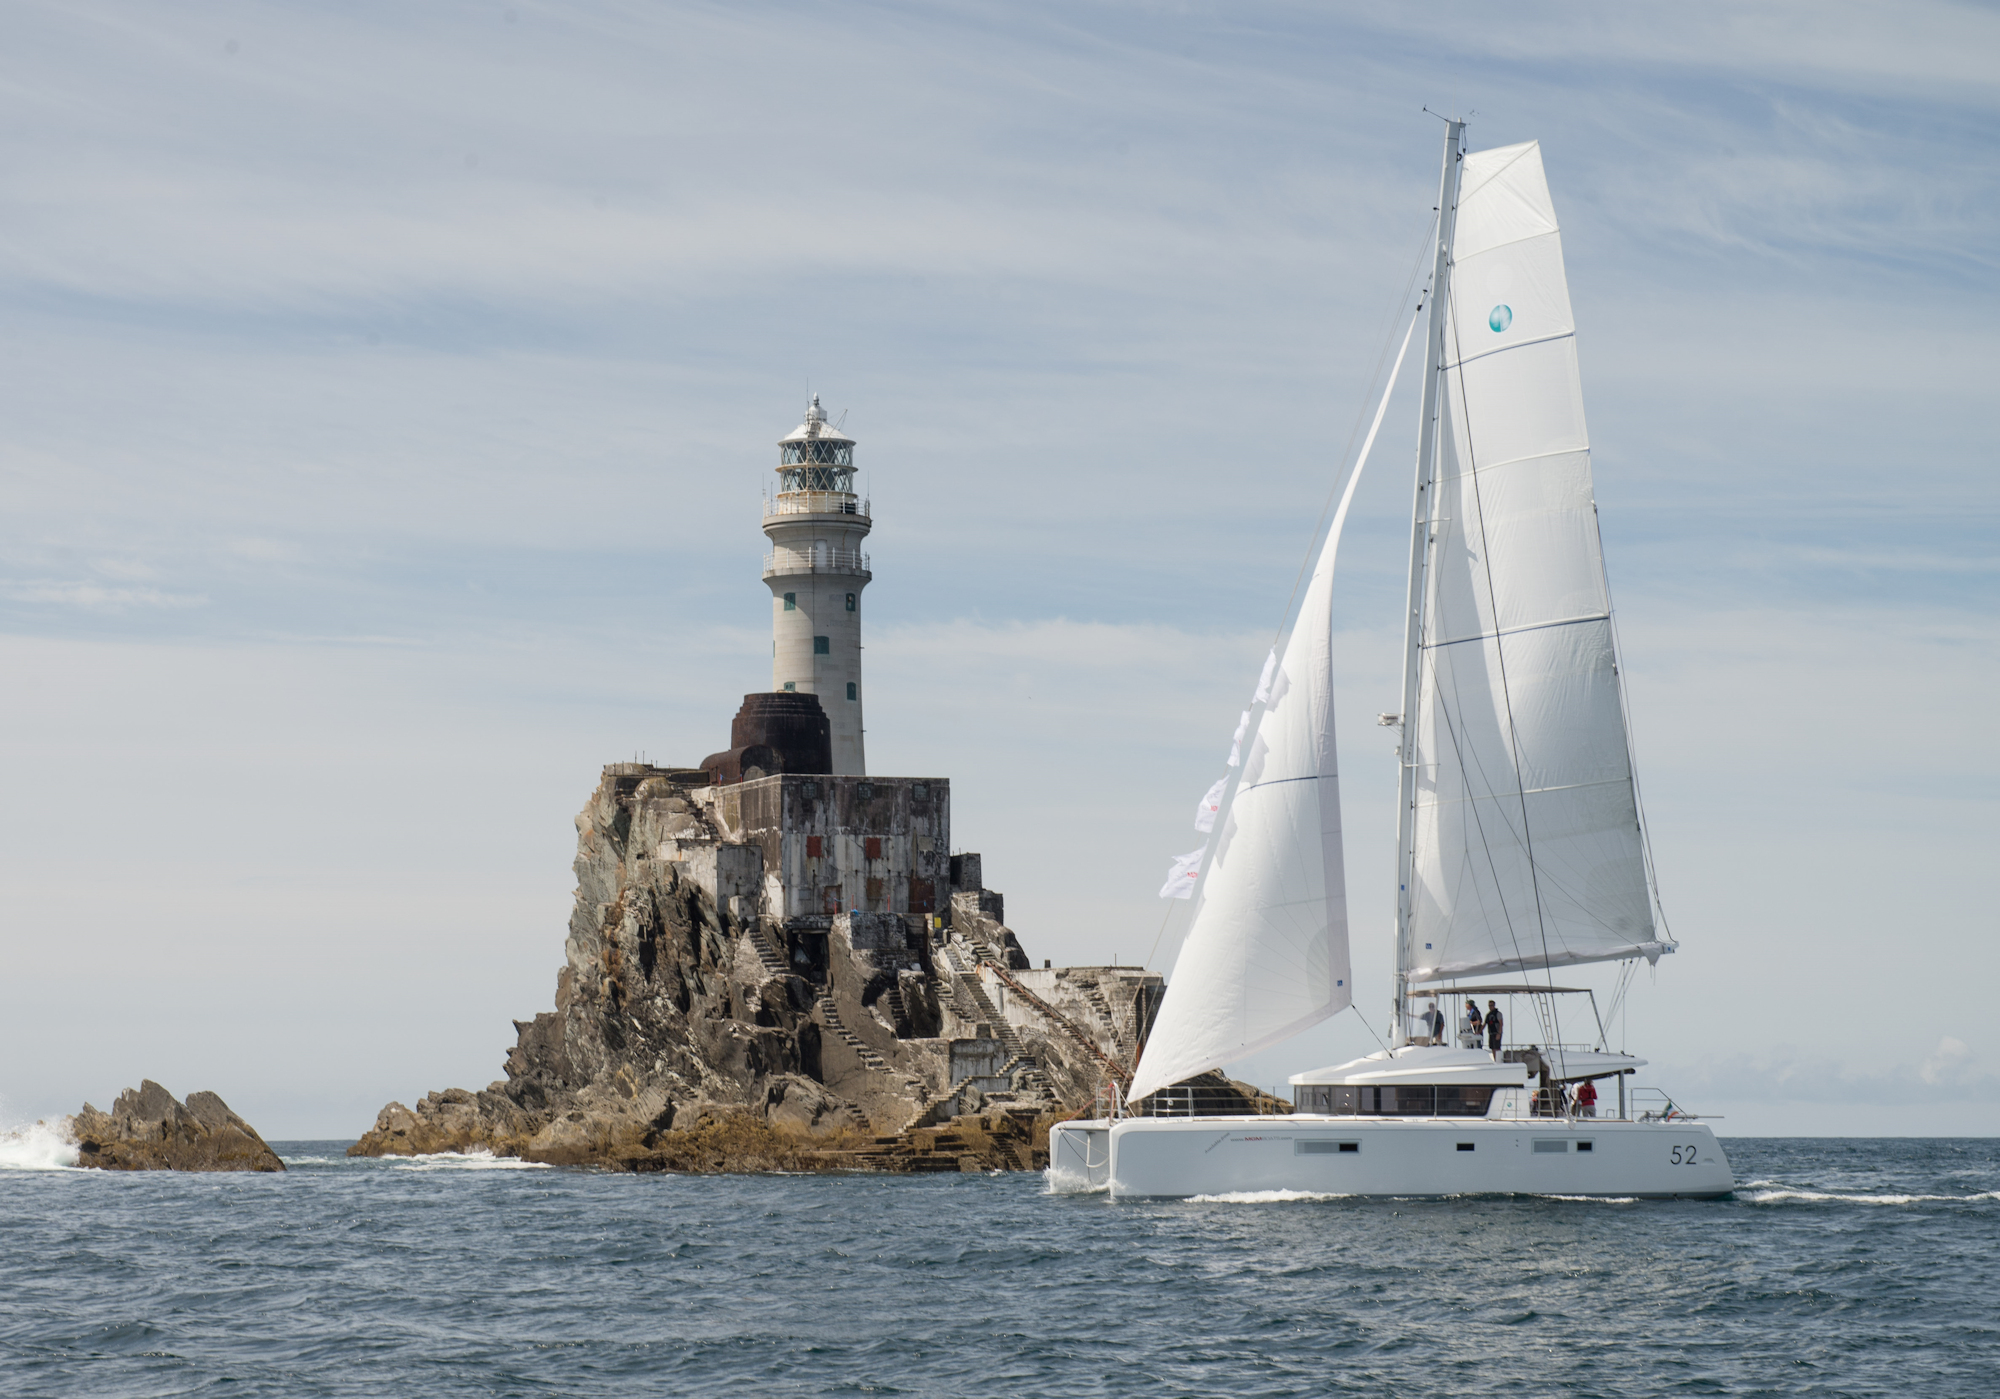 Sailing Boat On Lagoon - Boat Registration Services Ireland